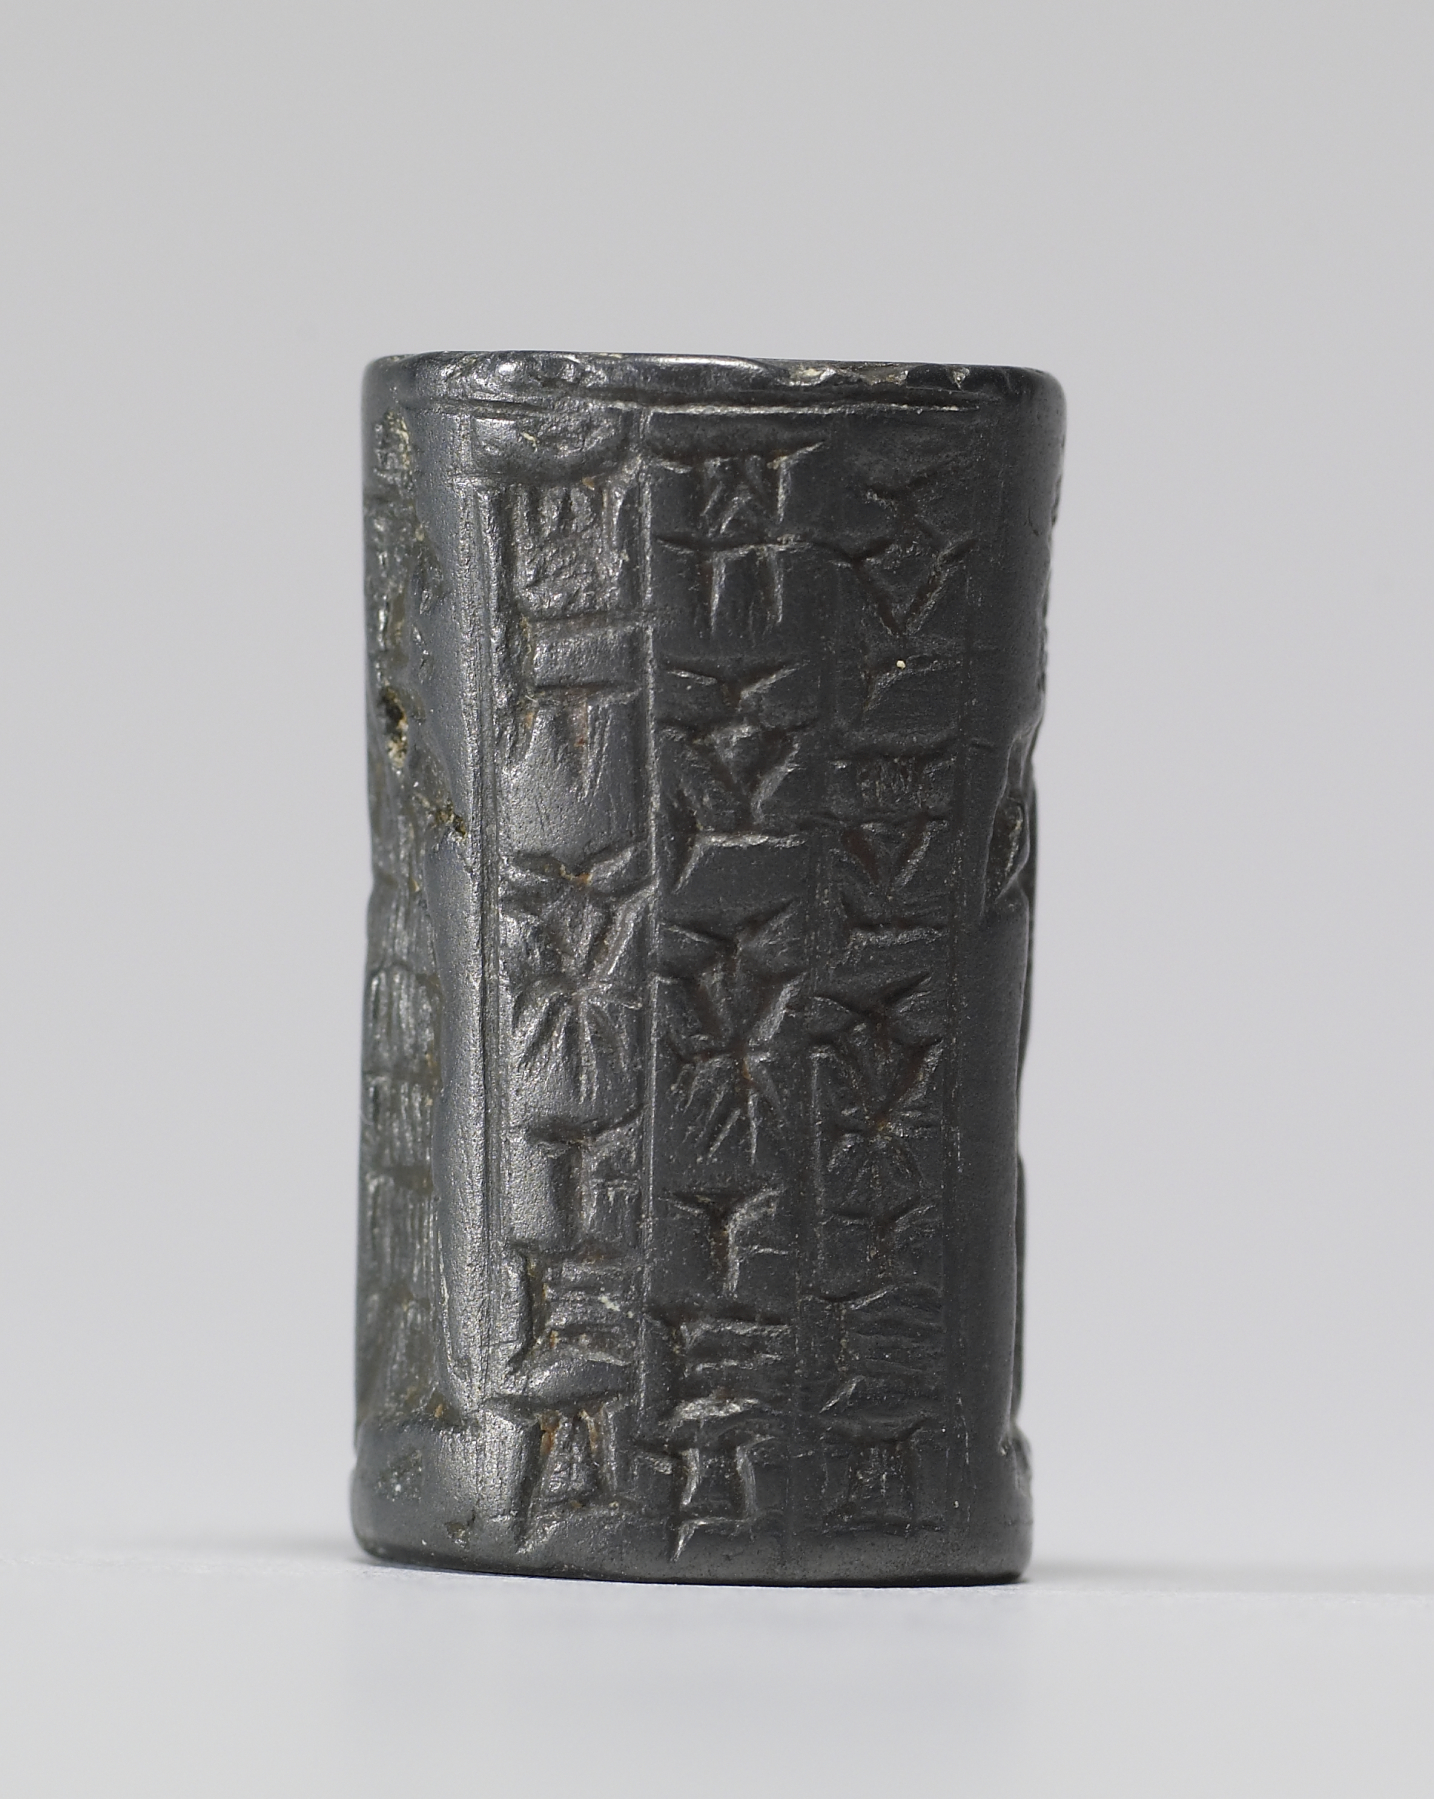 the envelope seal and the early mesopotamian writing process Cylinder seals were an ancient form of impression seals, which are used to make a unique identifying mark on some soft surface--much like some modern letter writers who create a personalized metal stamp seal with their initial(s) to stamp into hot sealing wax dripped on an envelope for creative effect.